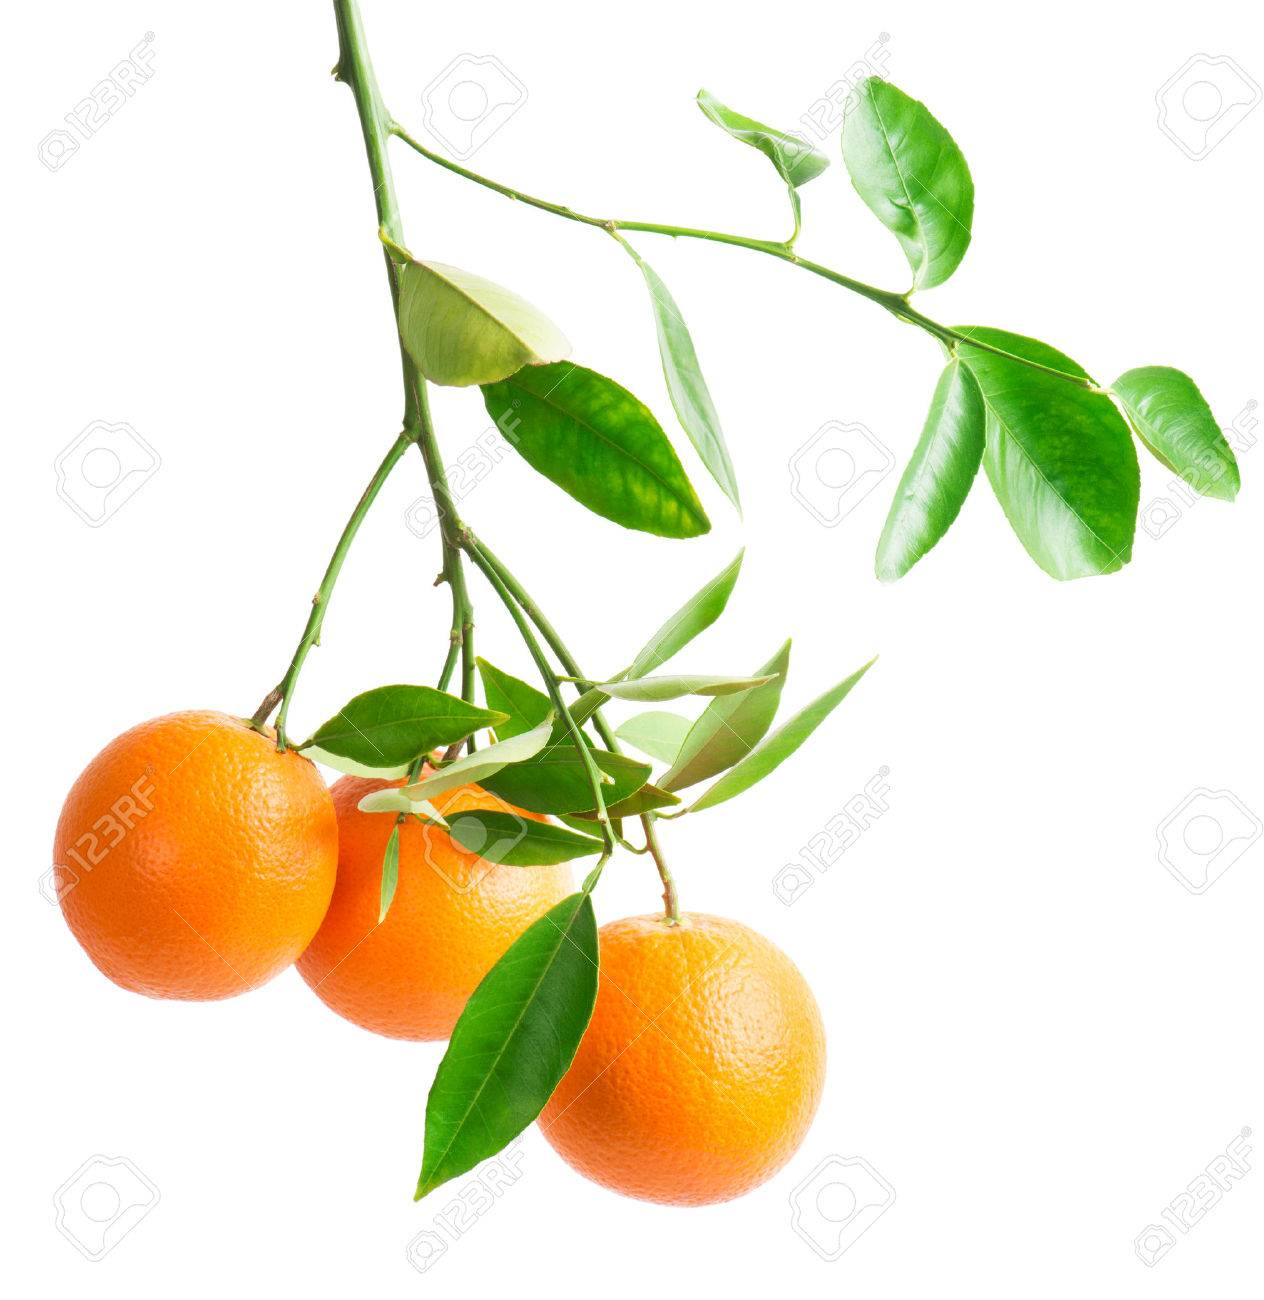 Branch With Fresh Ripe Orange Fruits Isolated On White Background Stock Photo Picture And Royalty Free Image Image 25676483